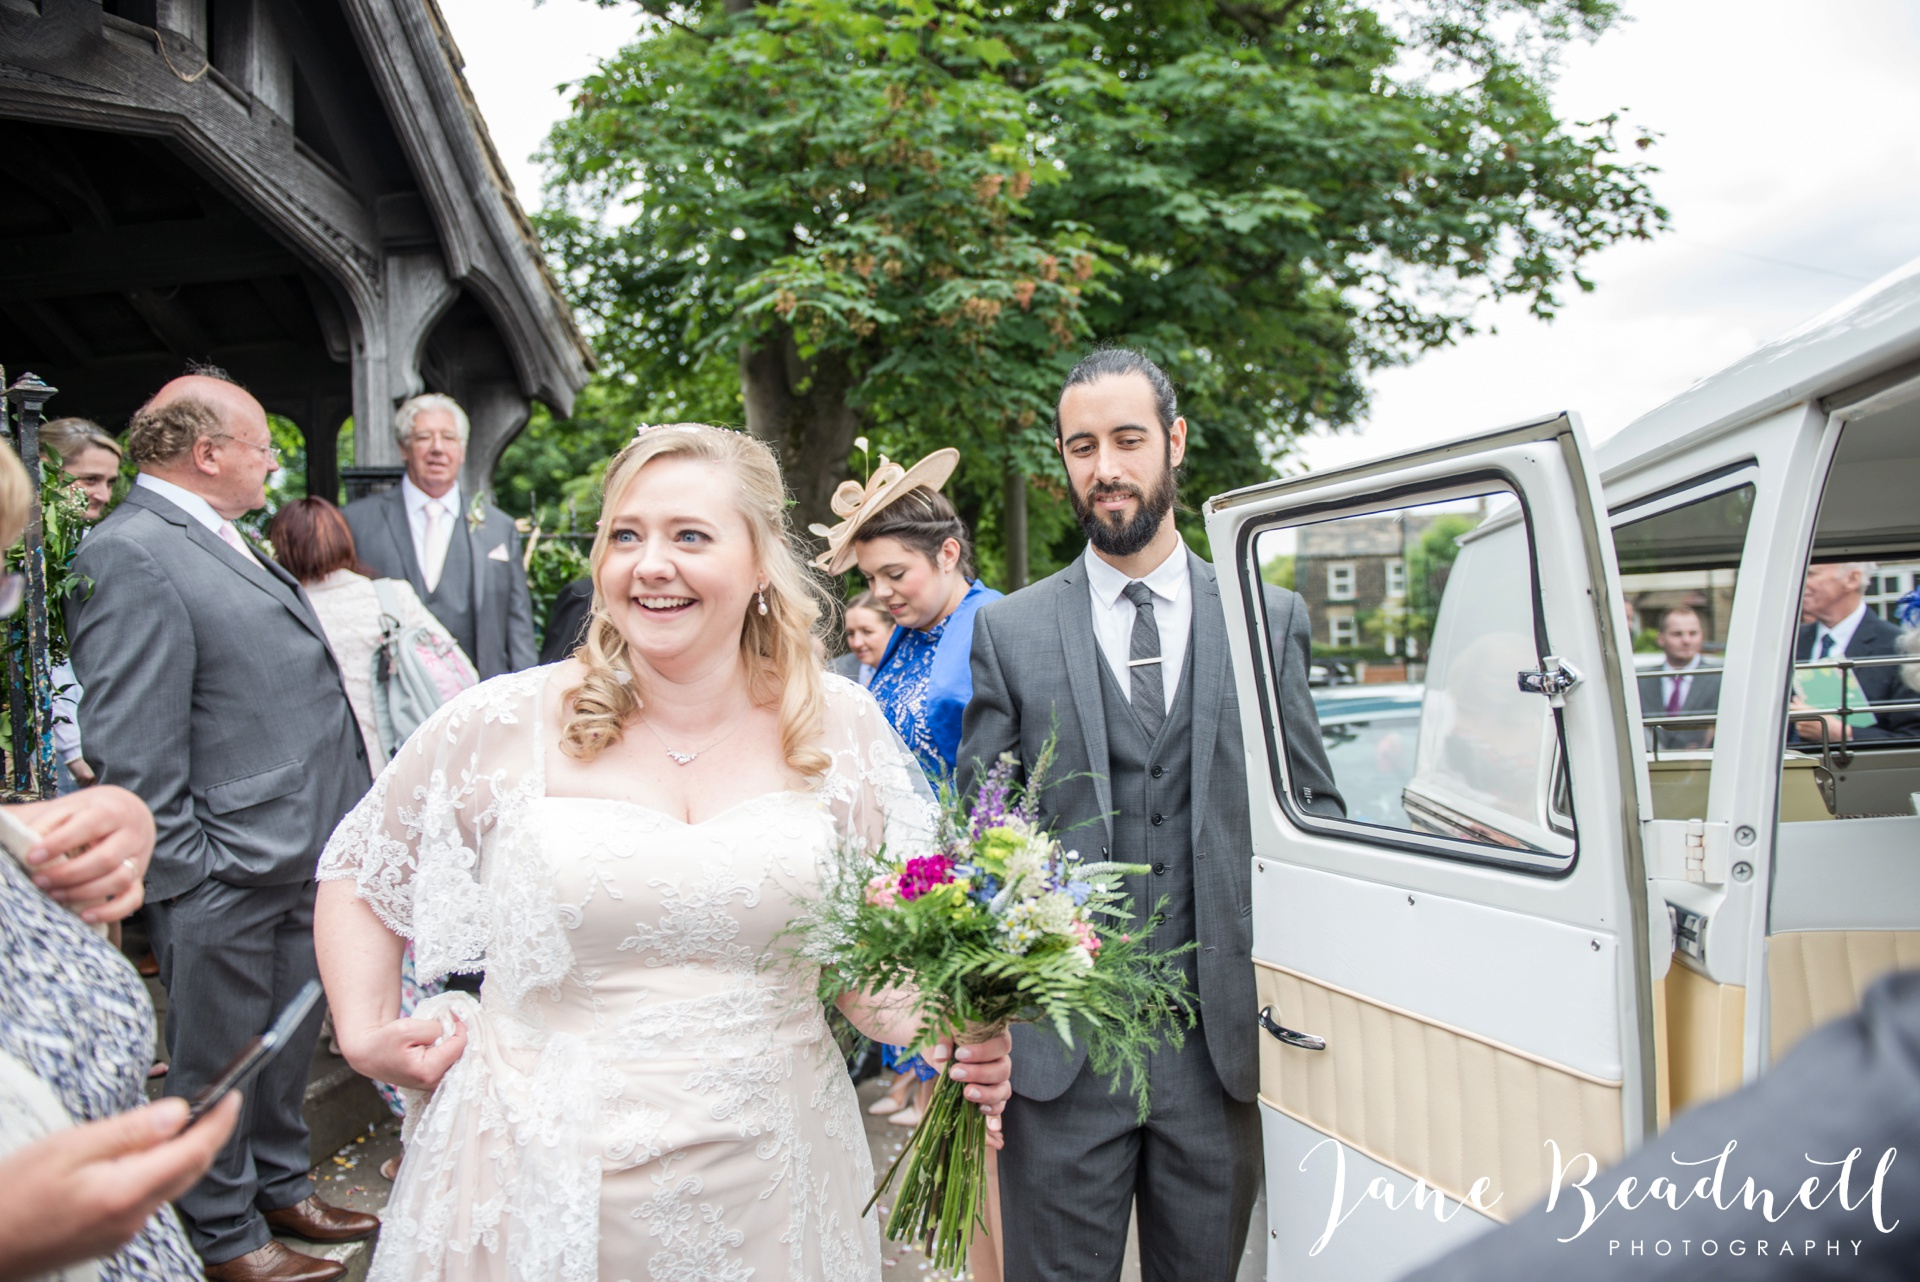 Yorkshire Wedding Photography the cheerful Chilli Barn Wedding by Jane Beadnell Photography_0098